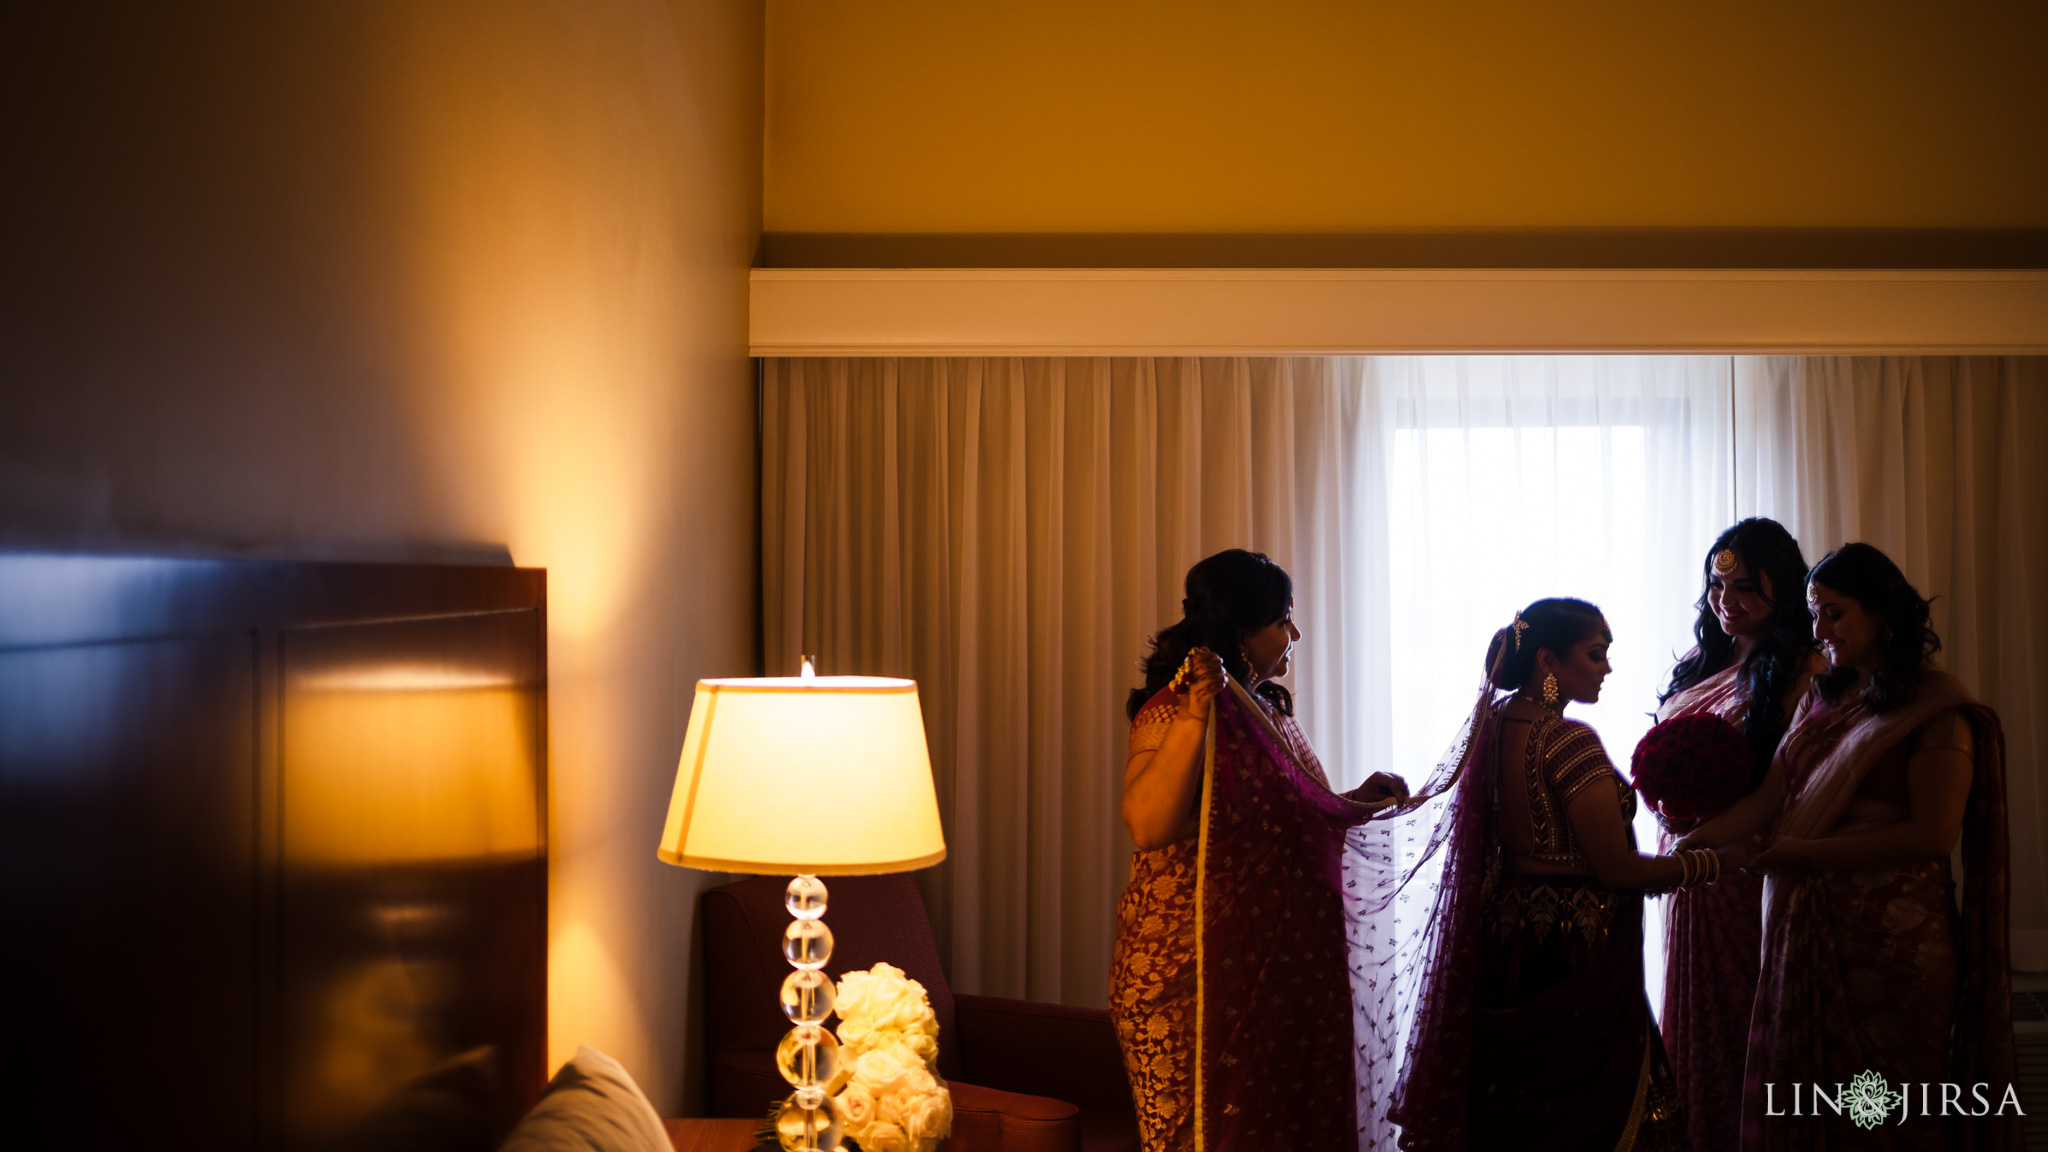 004 marriott santa clara indian wedding photography